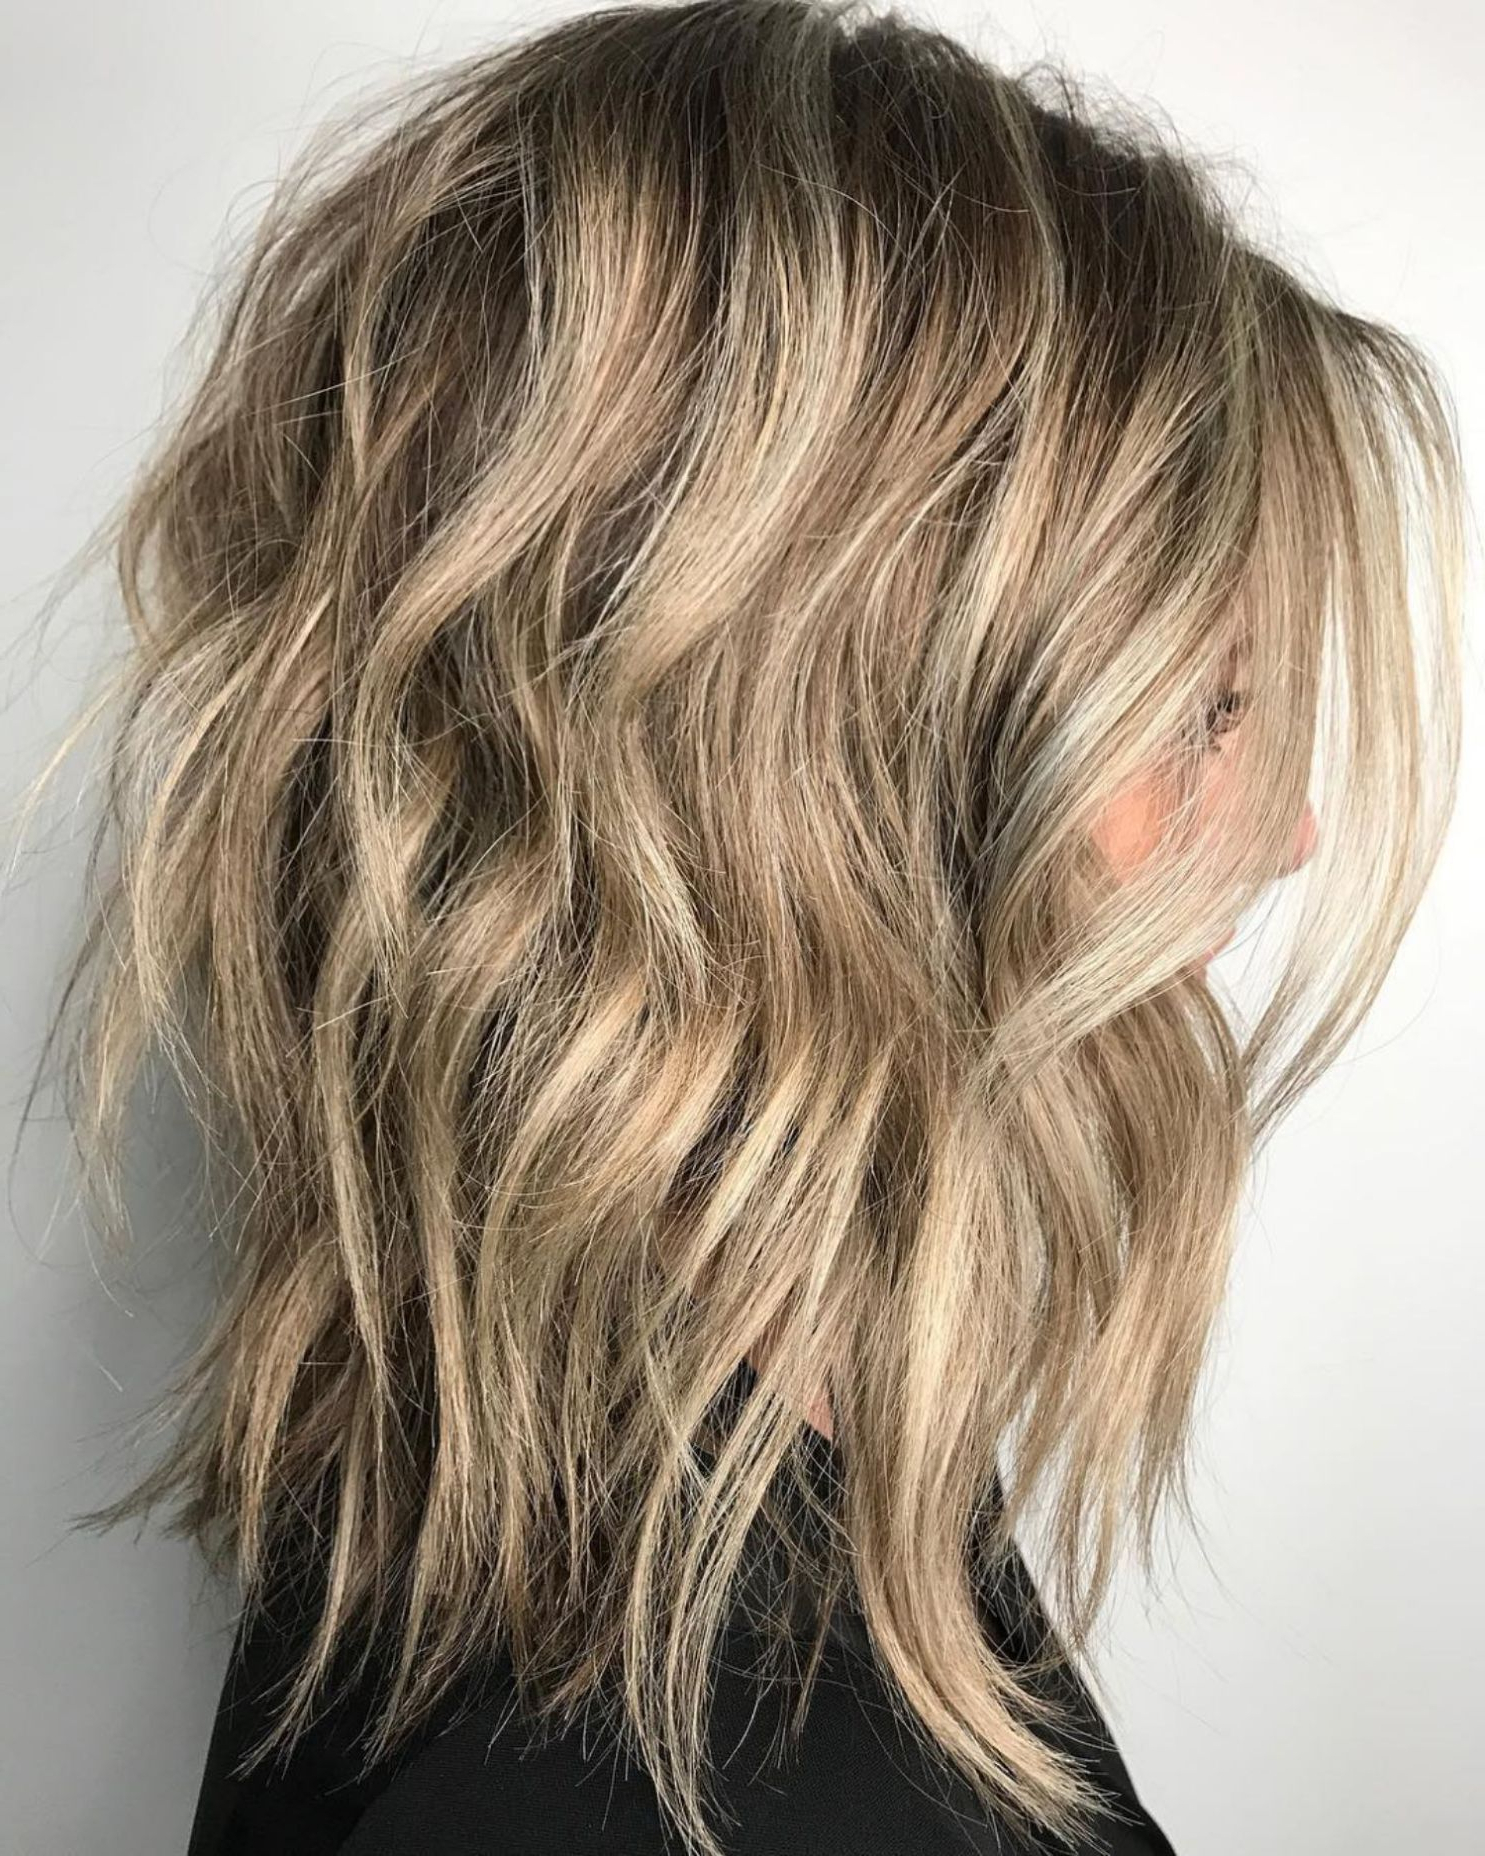 Current Uneven Layered Bob Hairstyles For Thick Hair Pertaining To 50 Best Variations Of A Medium Shag Haircut For Your Distinctive (View 5 of 20)